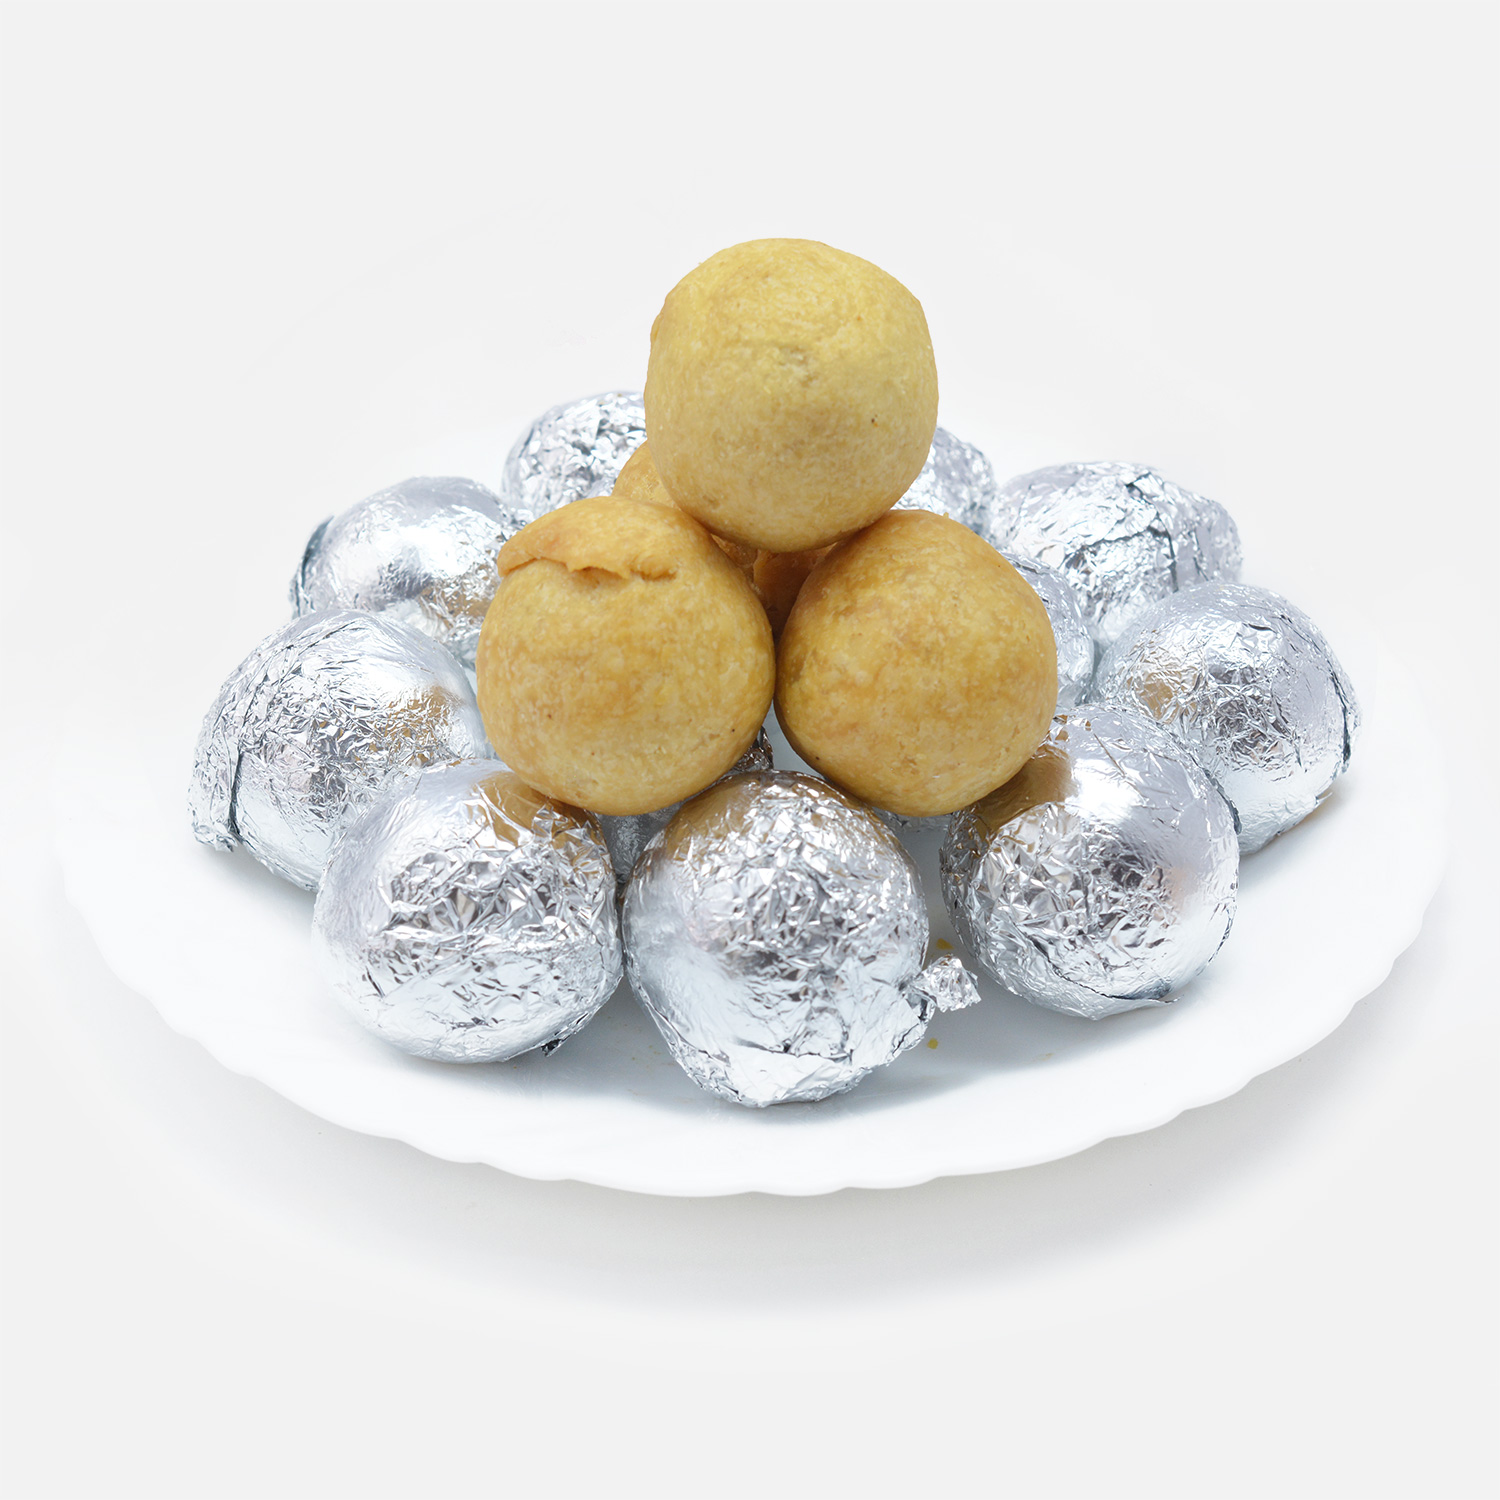 Authentic Rajasthani Dry Fruit Kachori 15 pcs